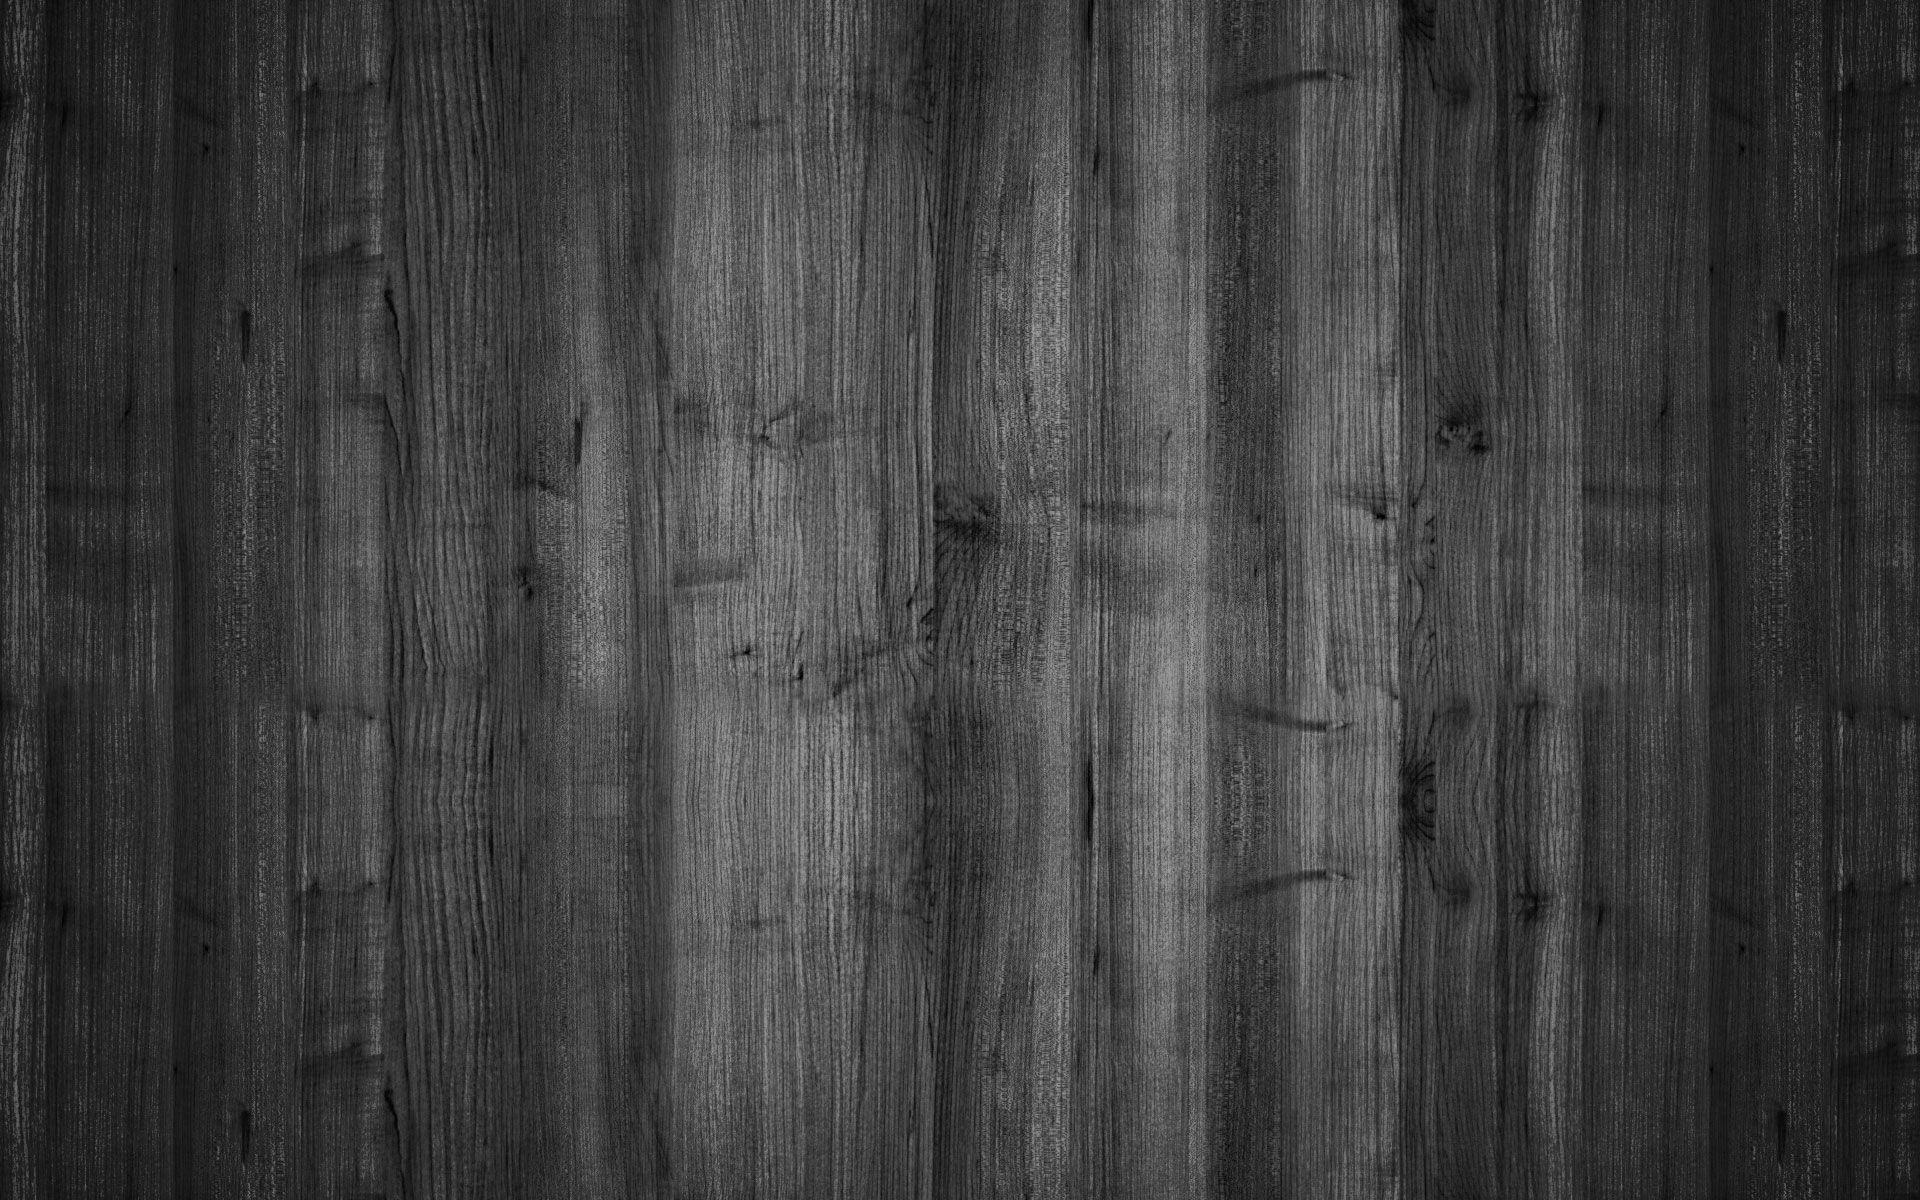 Hd Wood Grain Wallpaper Wiki